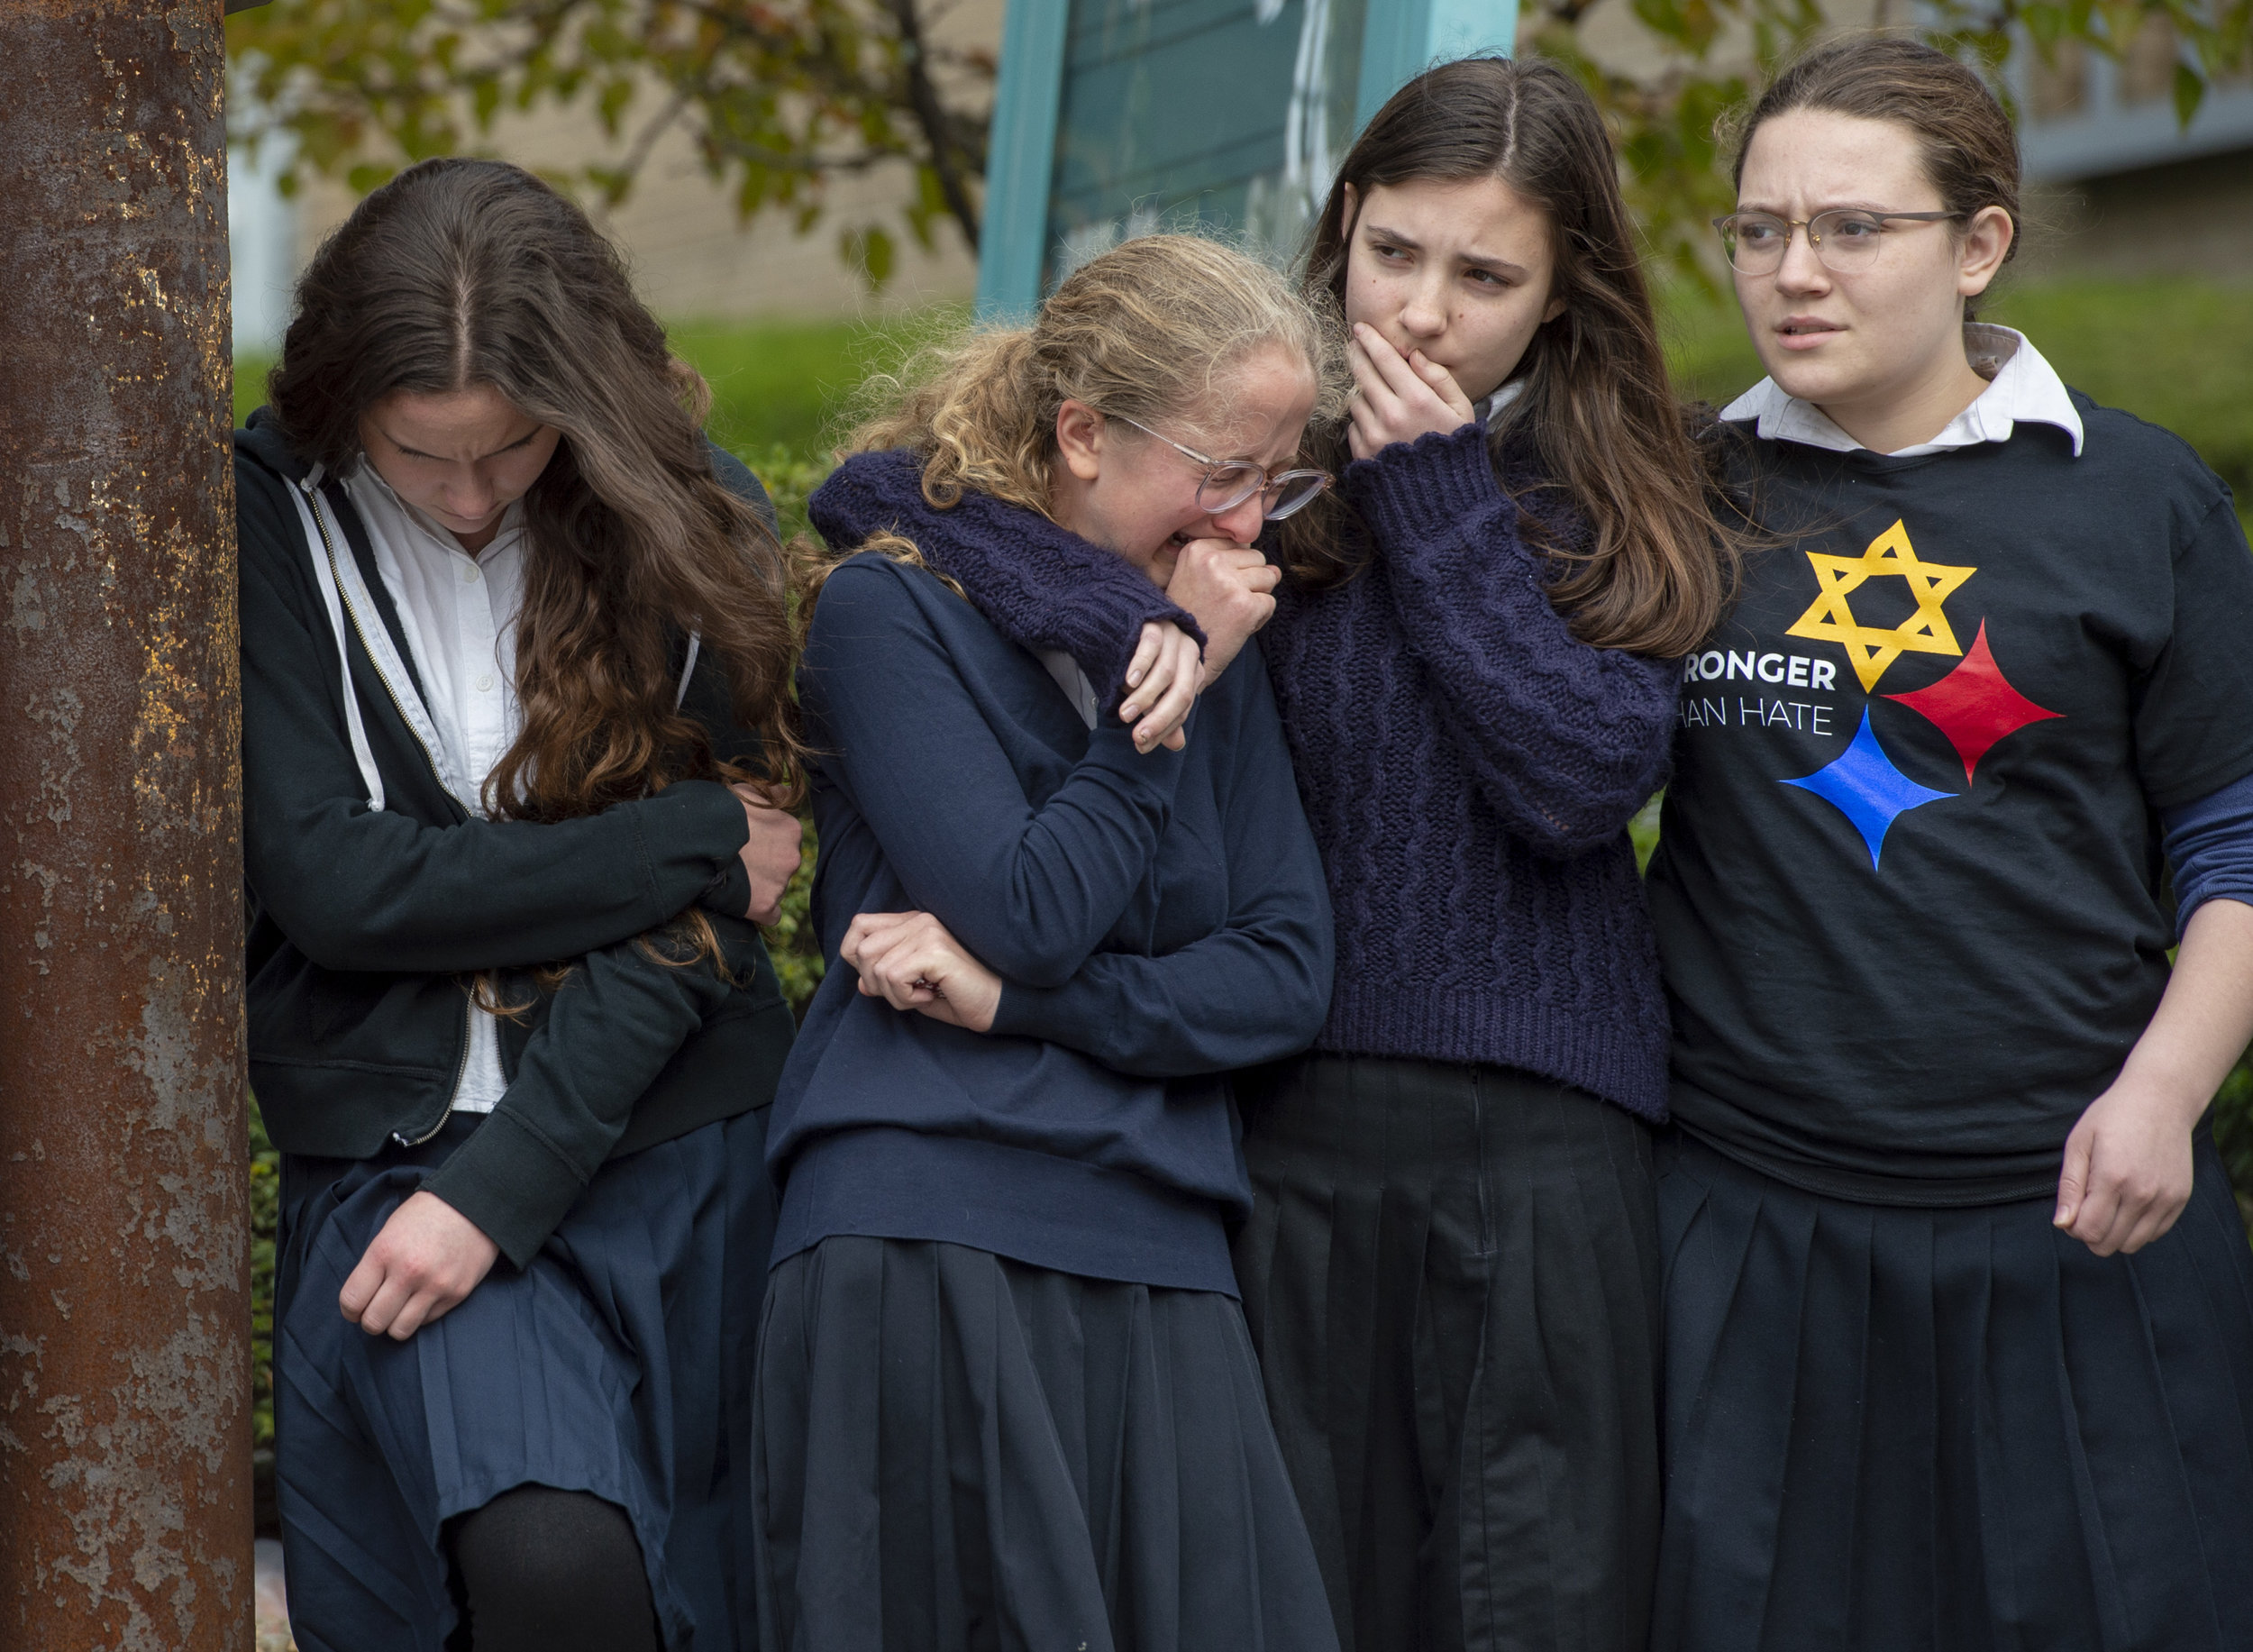 Yeshiva School students Batsheva Ezagui, Batya Deitsch, Esther Rivka Shkedi, Tzipporah Shkedi watch a funeral procession for Dr. Jerry Rabinowitz drive along Forbes Avenue as it heads toward Homewood Cemetery, on Tuesday, Oct. 30, 2018, in Squirrel Hill. Eleven people were killed and six were wounded, including four police officers, after a mass shooting at Tree of Life Congregation on Saturday, Oct. 27, 2018, in Squirrel Hill. (Steph Chambers/Post-Gazette)